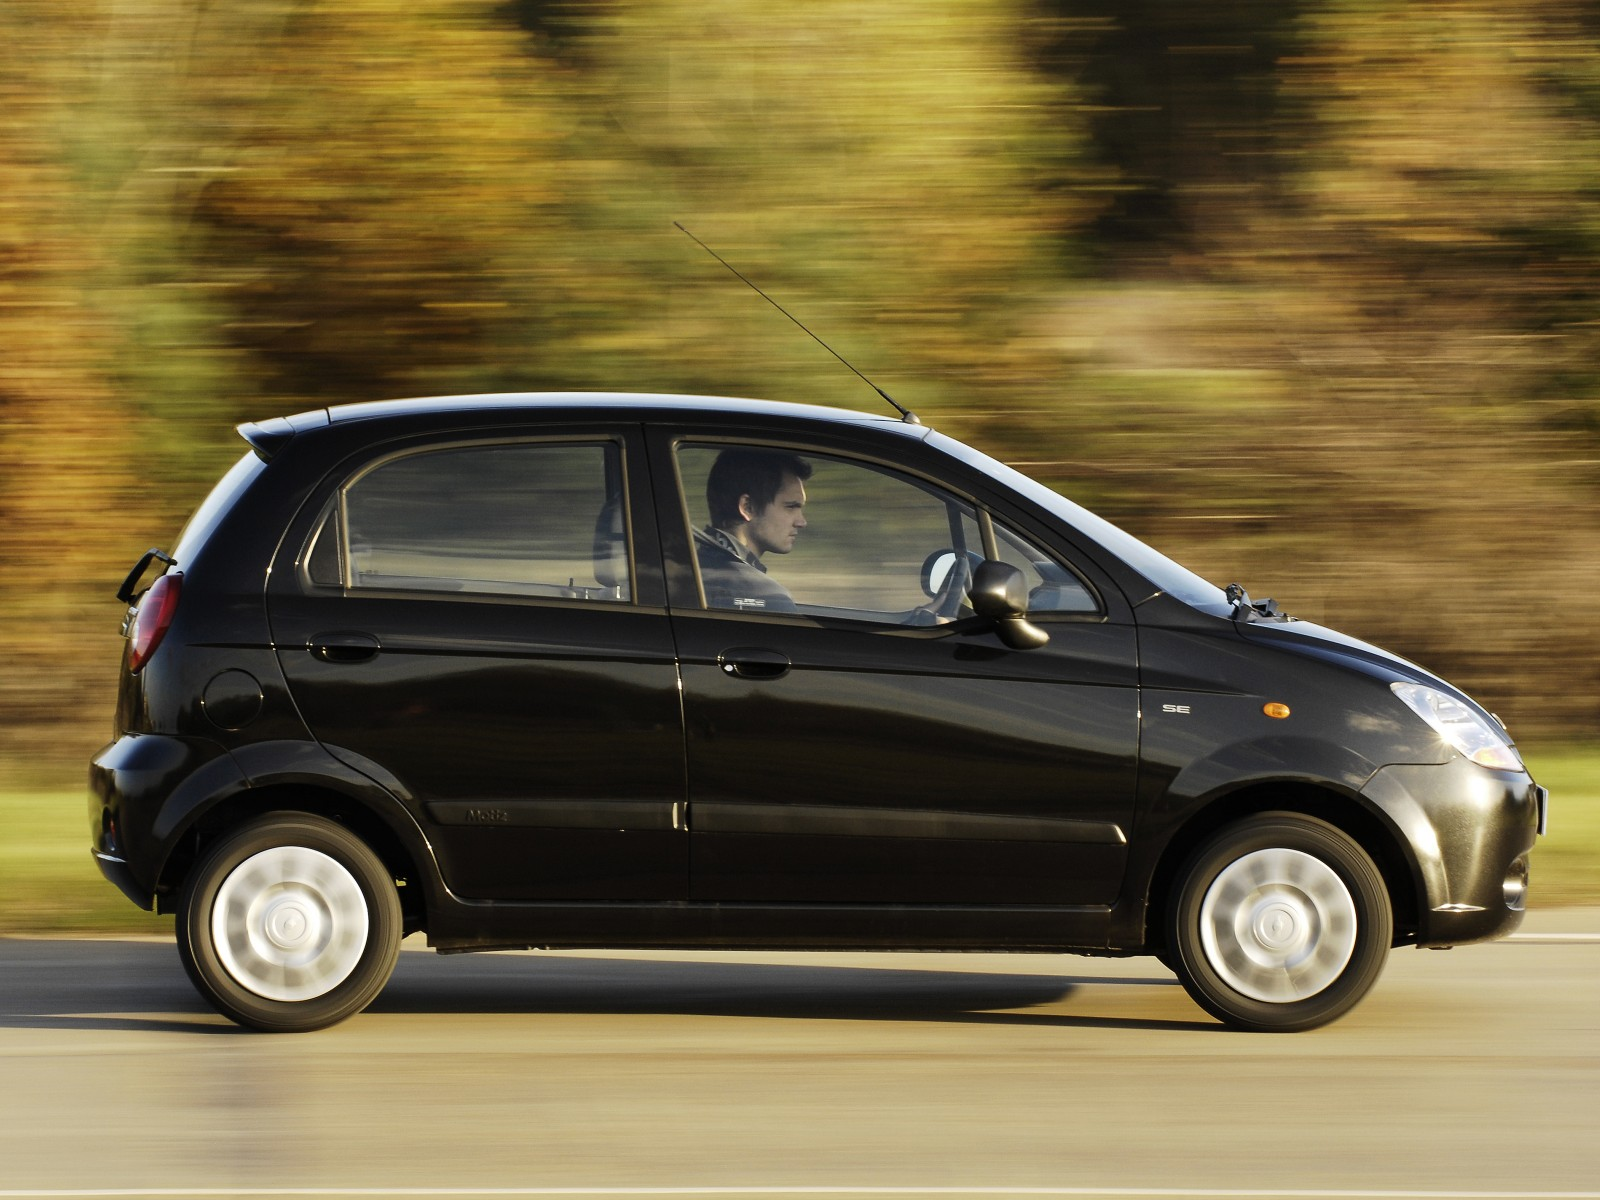 2009 chevrolet matiz wallpapers pictures specifications interiors and exteriors pictures. Black Bedroom Furniture Sets. Home Design Ideas